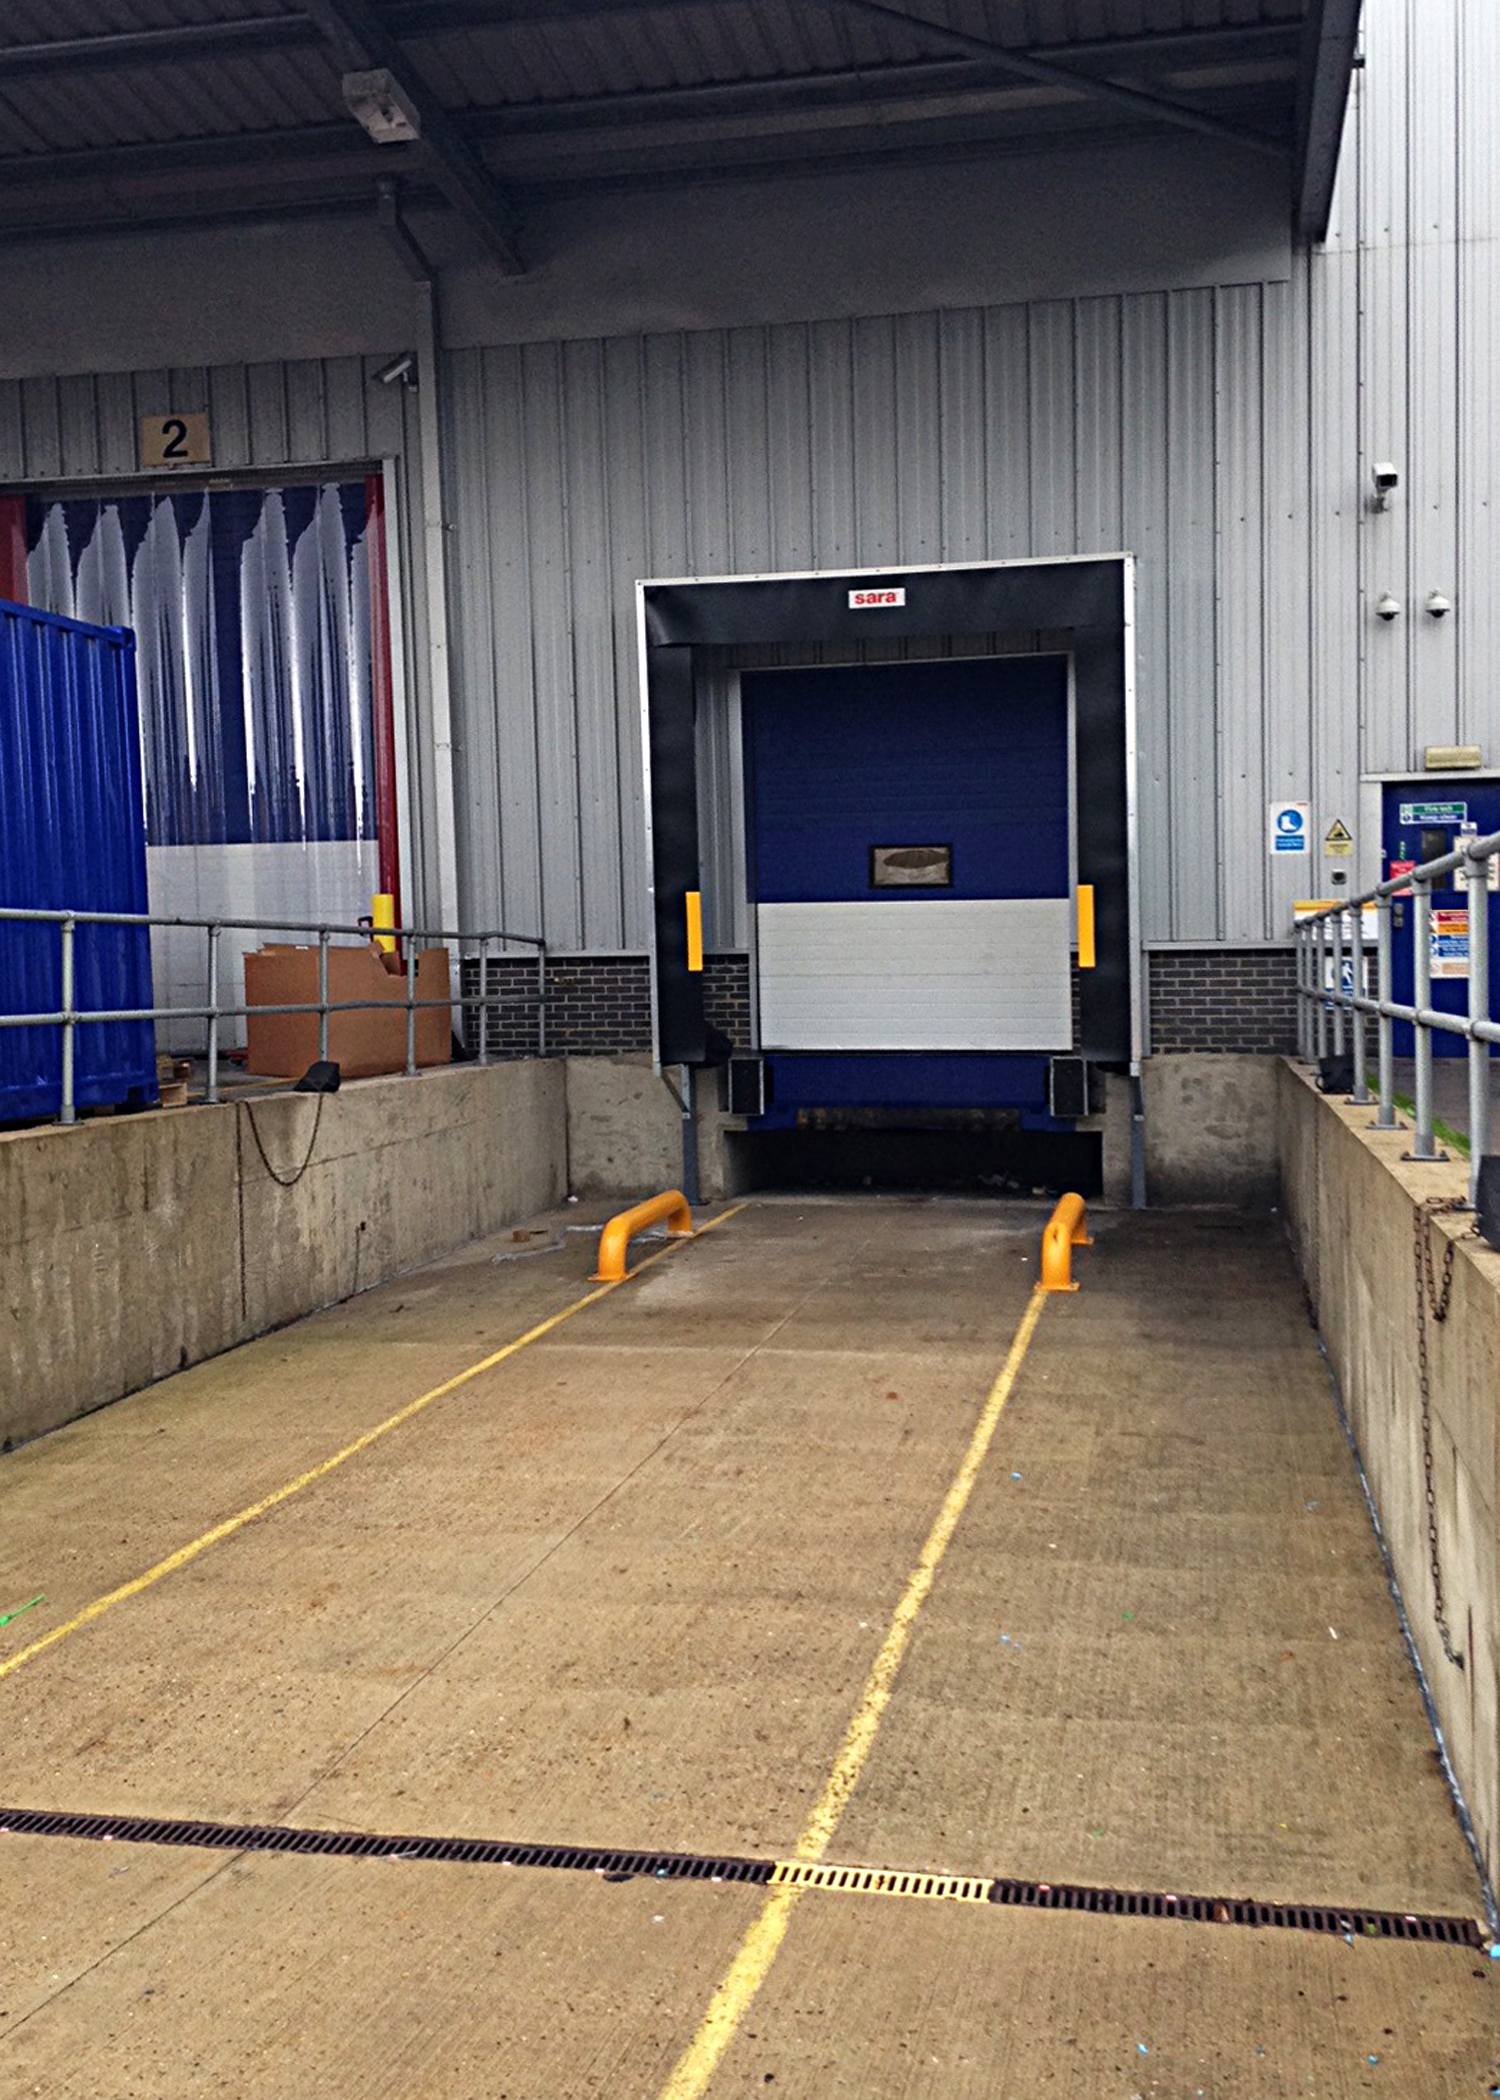 Special loading bay has temperature stabilised by sara LBS inflatable shelter